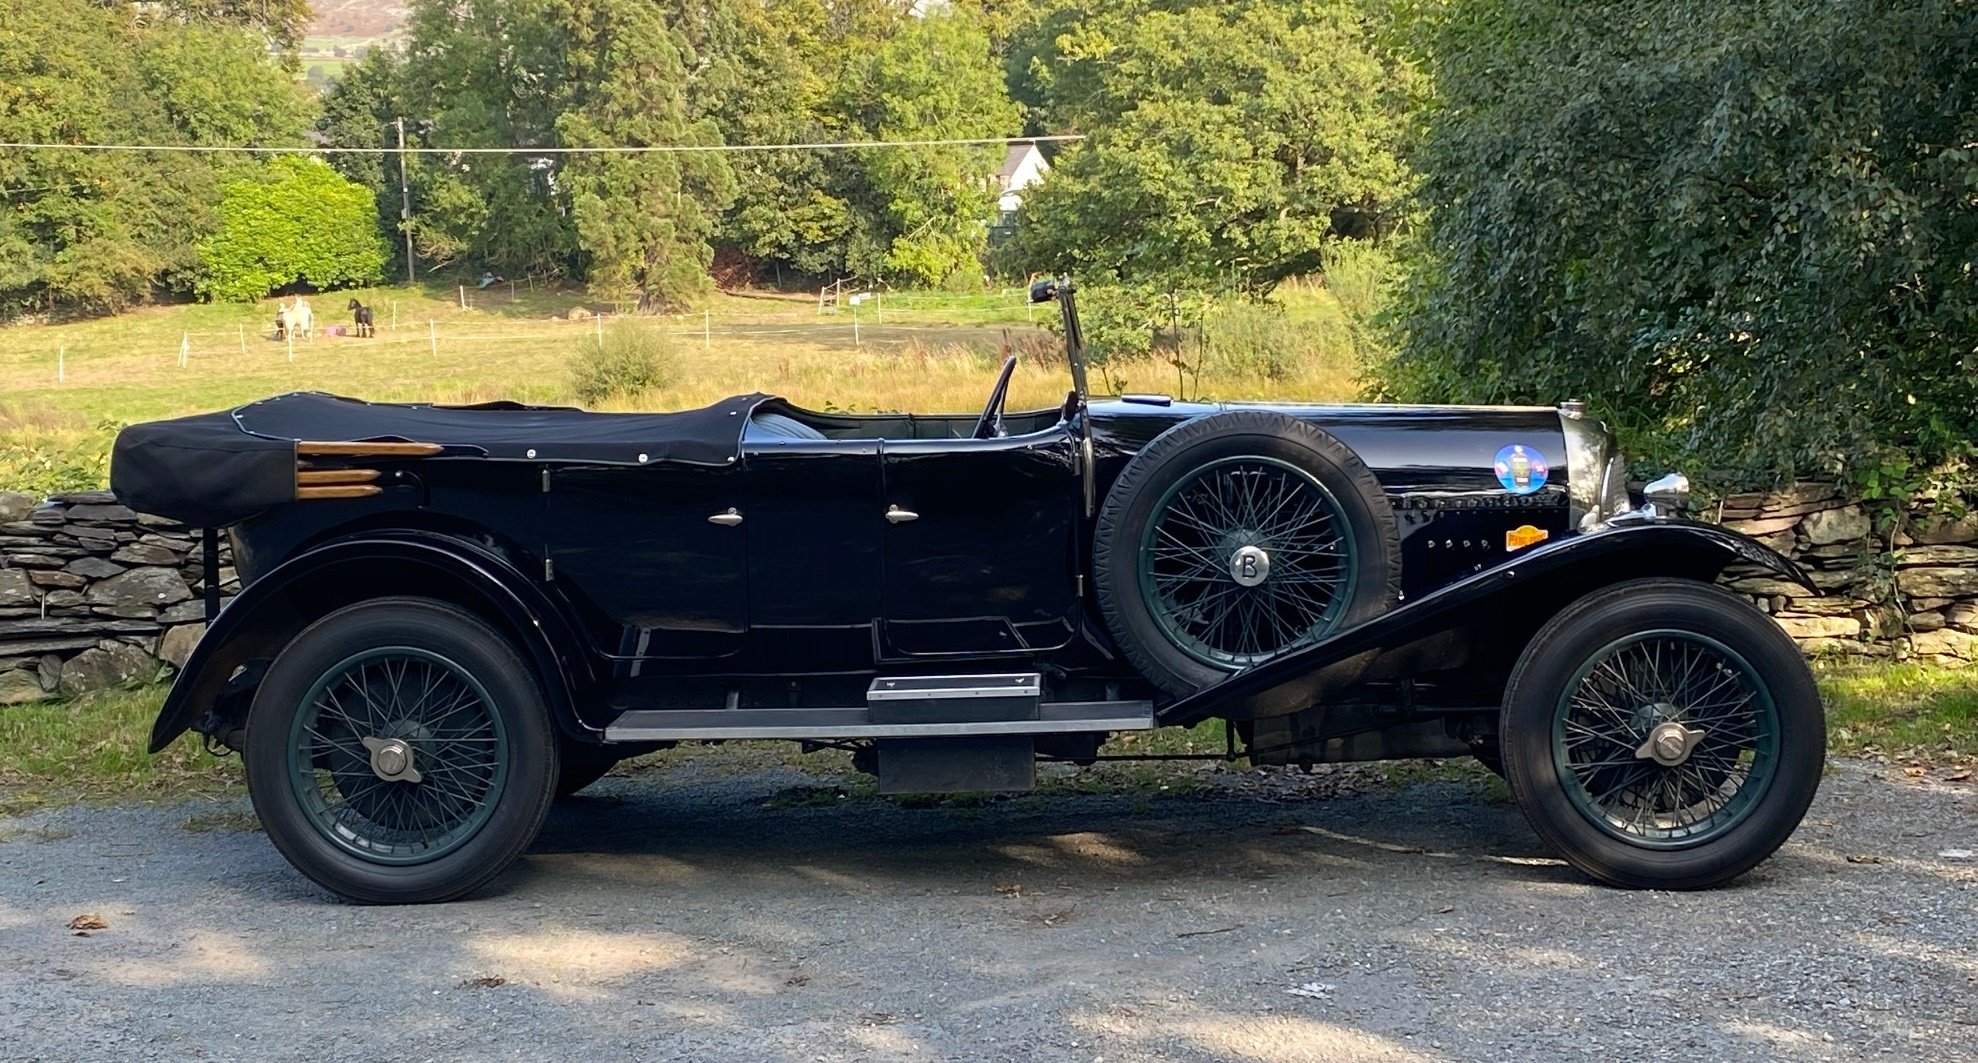 1926 Bentley 3 Ltr Gurney Nutting Open Tourer PH1465 For Sale (picture 5 of 6)